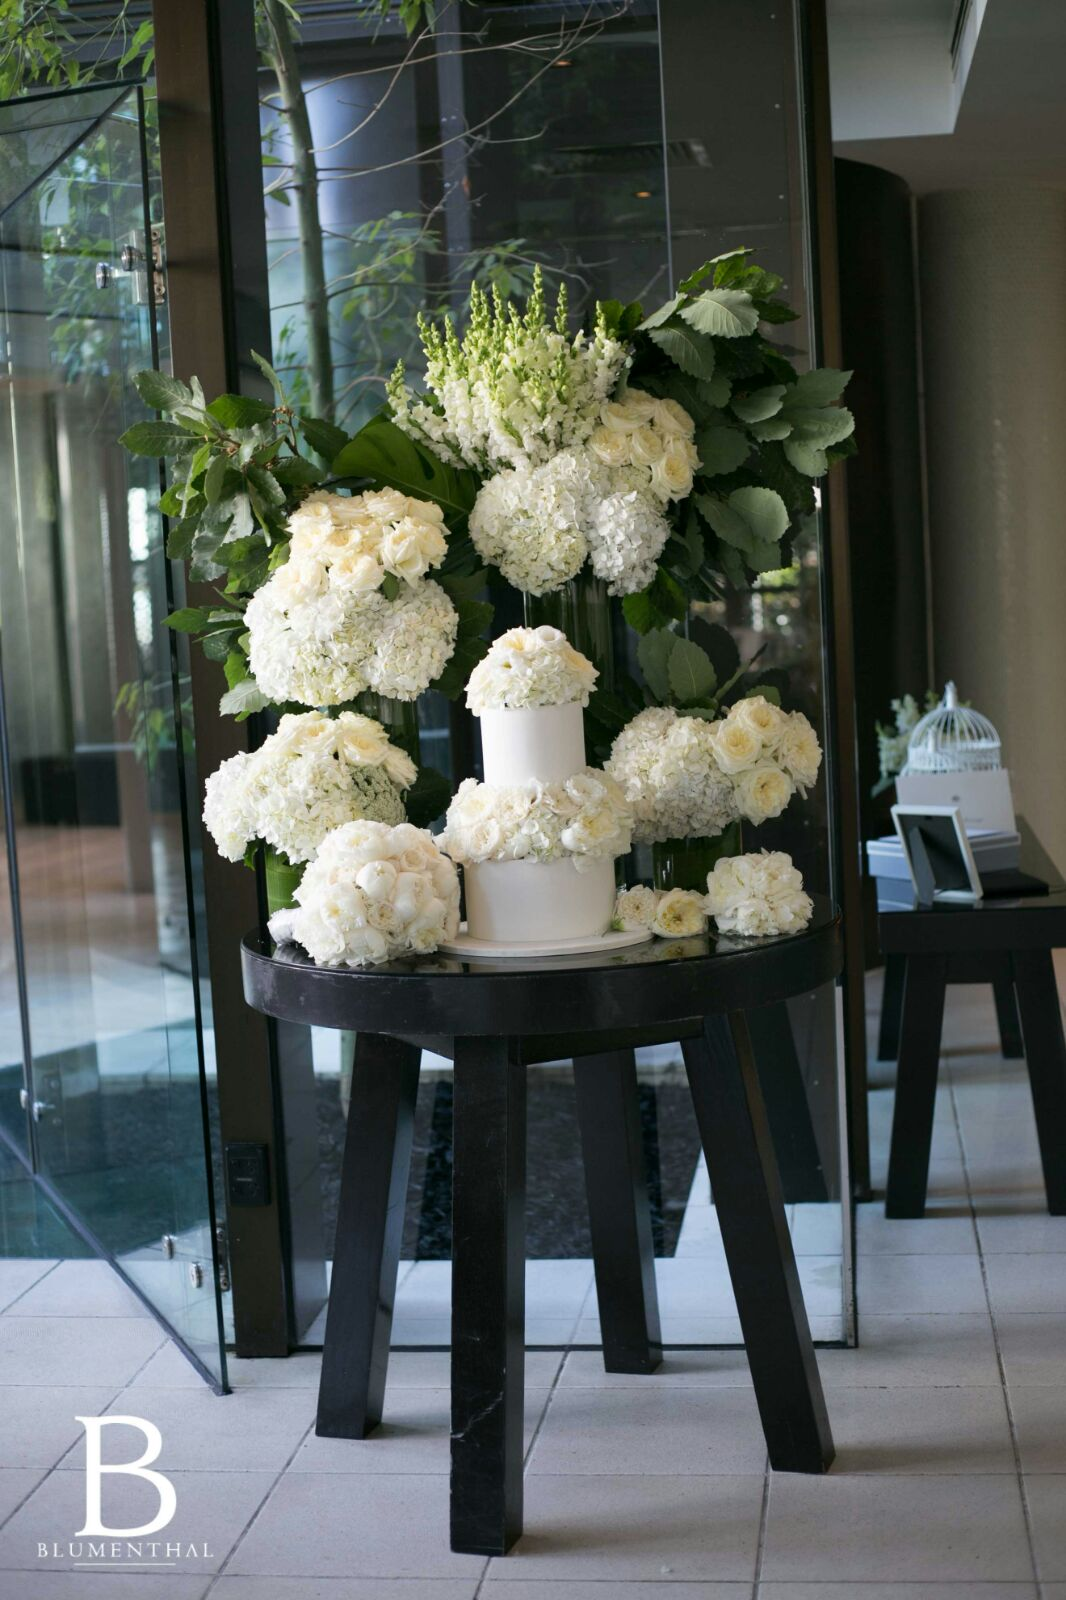 Wedding Flowers at Entrance of Reception Venue